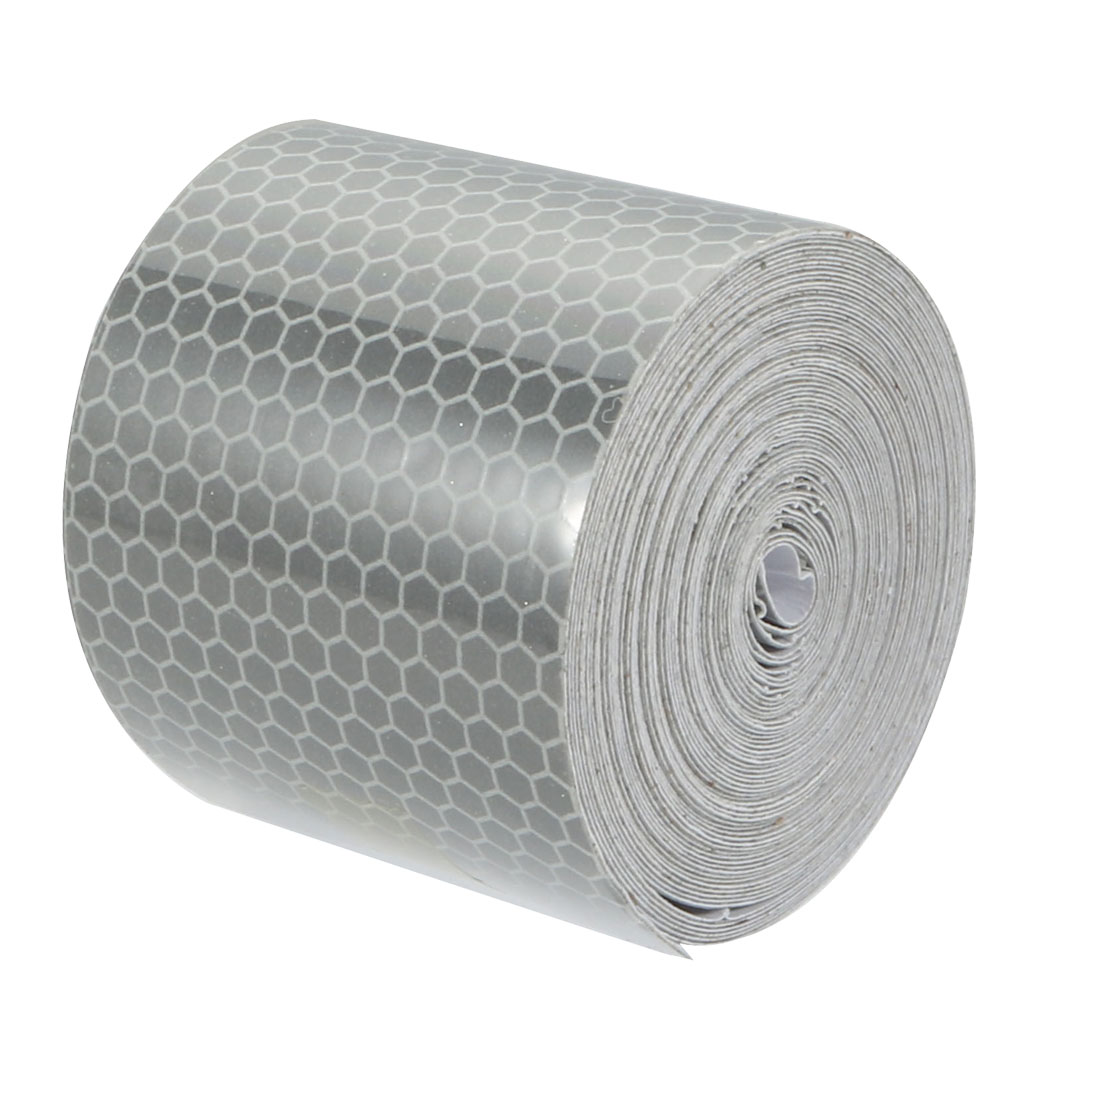 5cm Width 6M Length Honeycomb Adhesive Reflective Warning Tape Silvery White